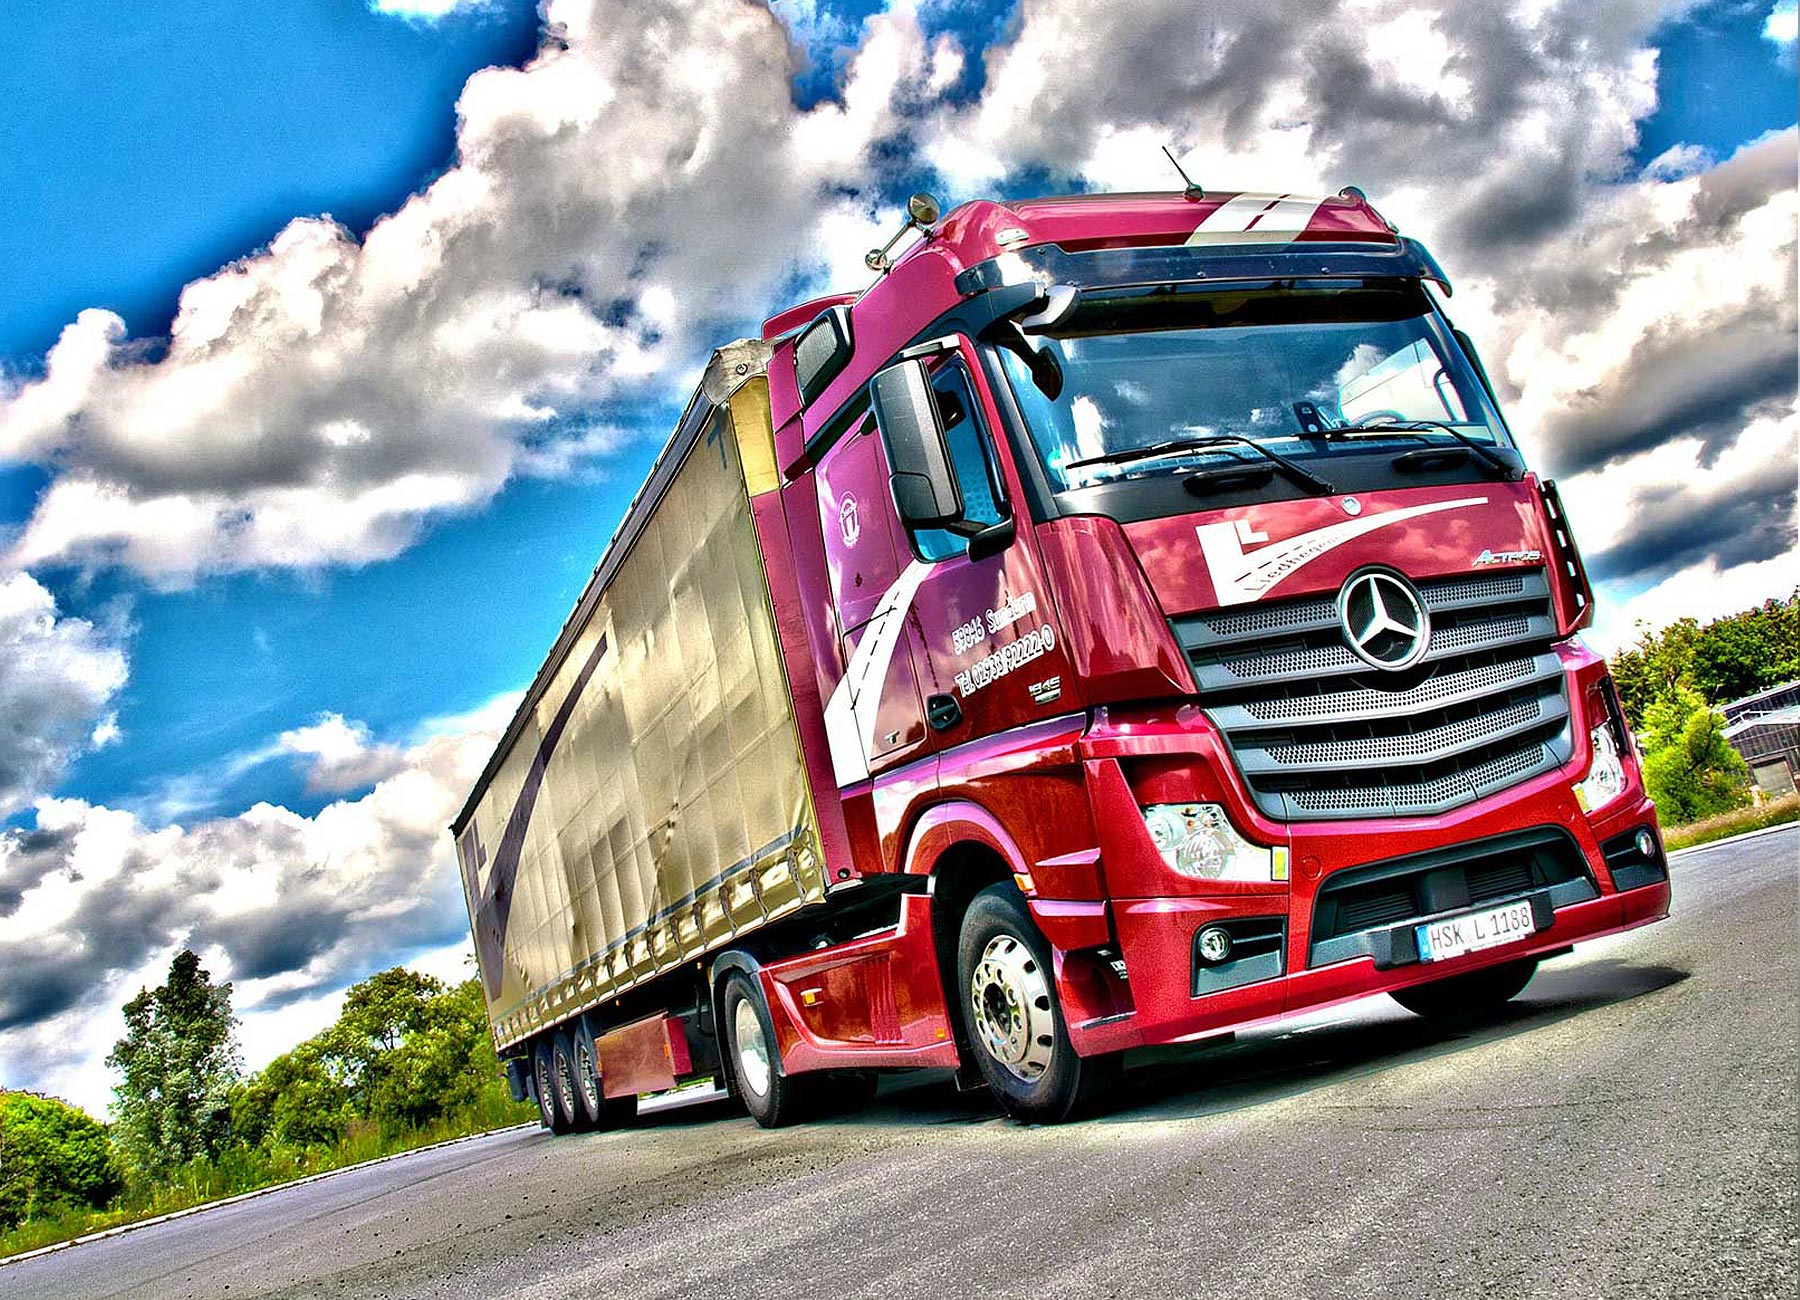 ADAC Truck-Grand-Prix 2012 – The success story is going on.